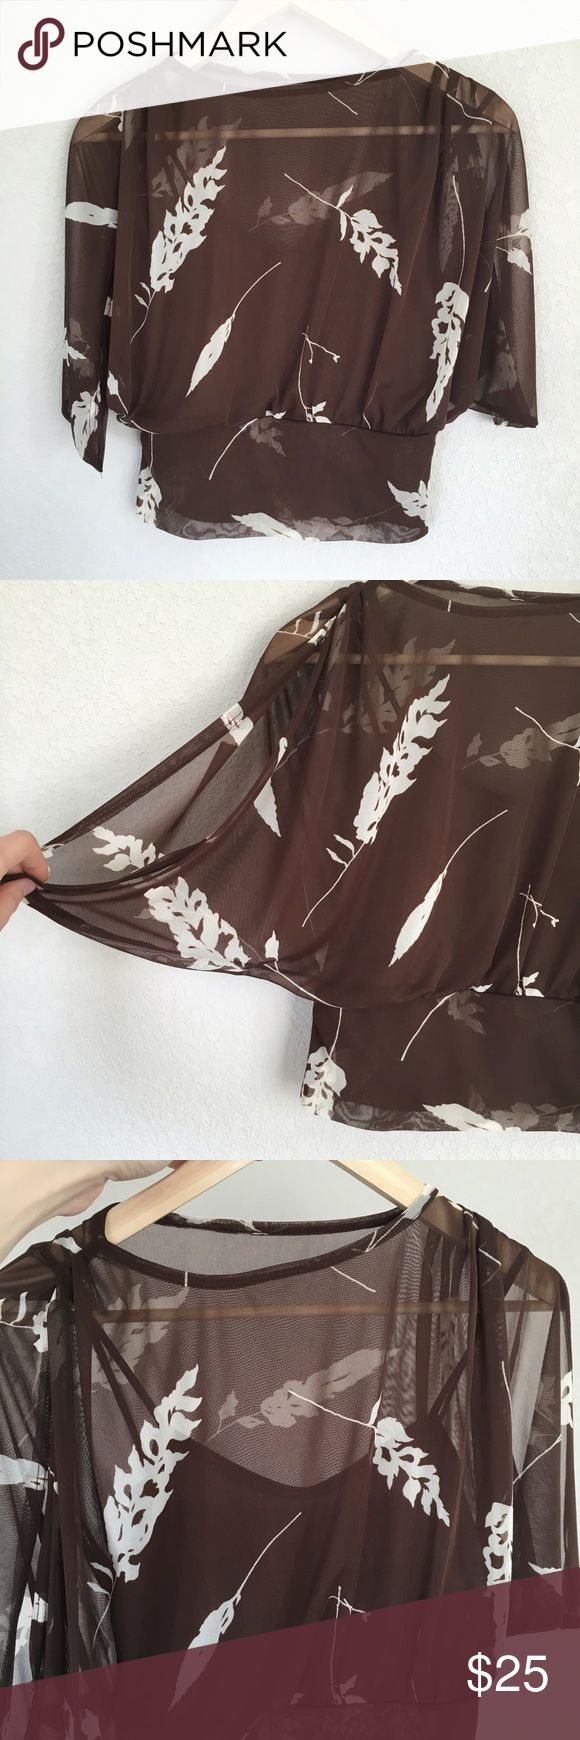 """Brown and White Floral Top Excellent condition top that features a brown cami sewn into a sheer brown floral overlay. Batwing-type sleeves have open slits on the arms. 100% polyester, hand wash cold, hang dry. Measures 13"""" flat across bottom waist band that hits just above or at pants (depending on your torso length). Made in USA. Flat measurements: 13"""" across bottom (has elastic for stretch up to 18""""); sleeve length 17""""; boat neck opening 9"""" across; length 19.5"""". Hot Sauce Tops Camisoles"""